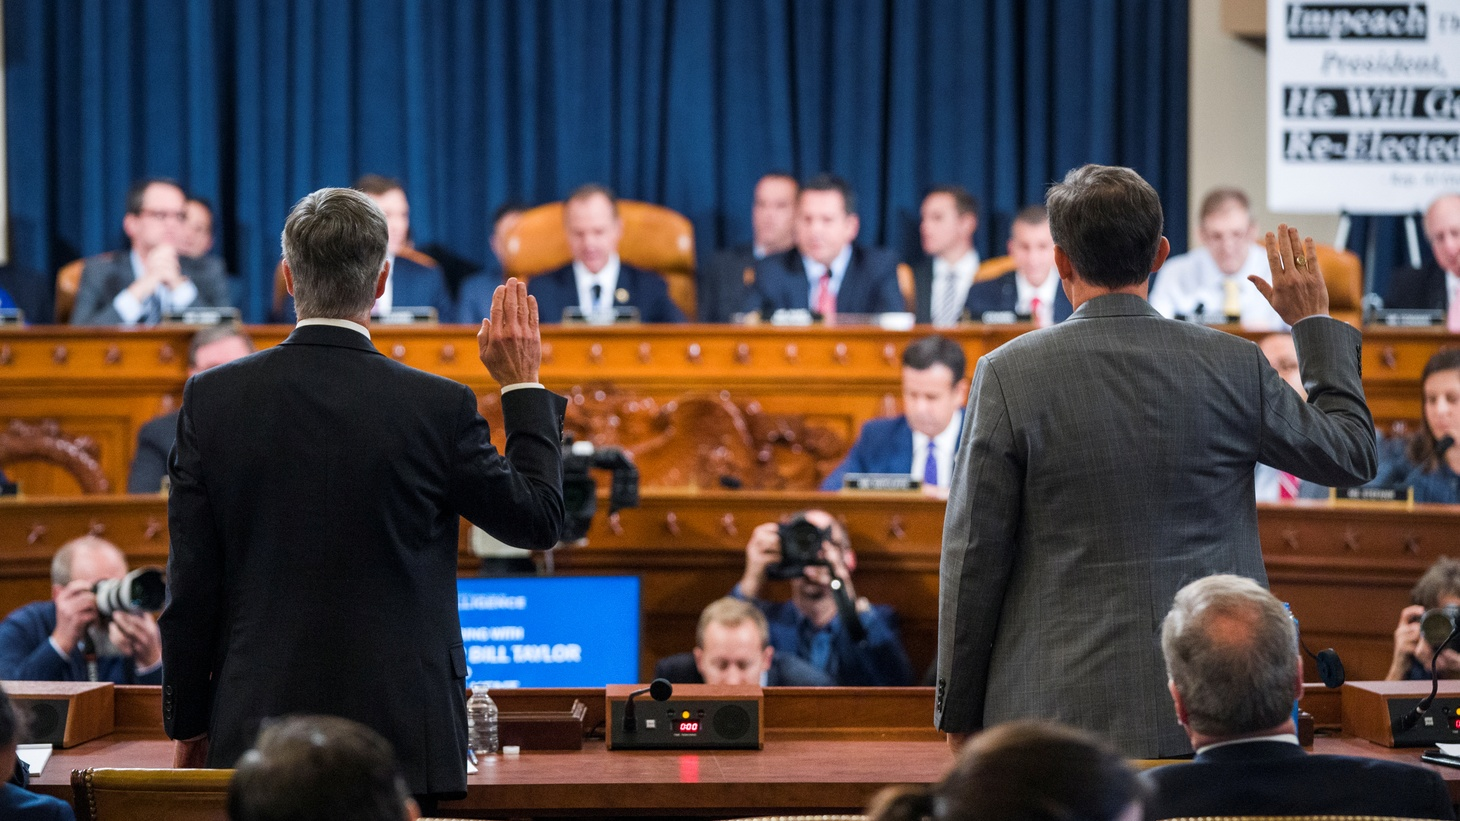 Charge d'Affaires at the US embassy in Ukraine Bill Taylor (L) and Deputy Assistant Secretary of State for Europe and Eurasia George Kent (R) are sworn in to testify before the House Permanent Select Committee on Intelligence hearing on the impeachment inquiry into U.S. President Donald J. Trump, on Capitol Hill in Washington, DC, U.S., November 13, 2019.